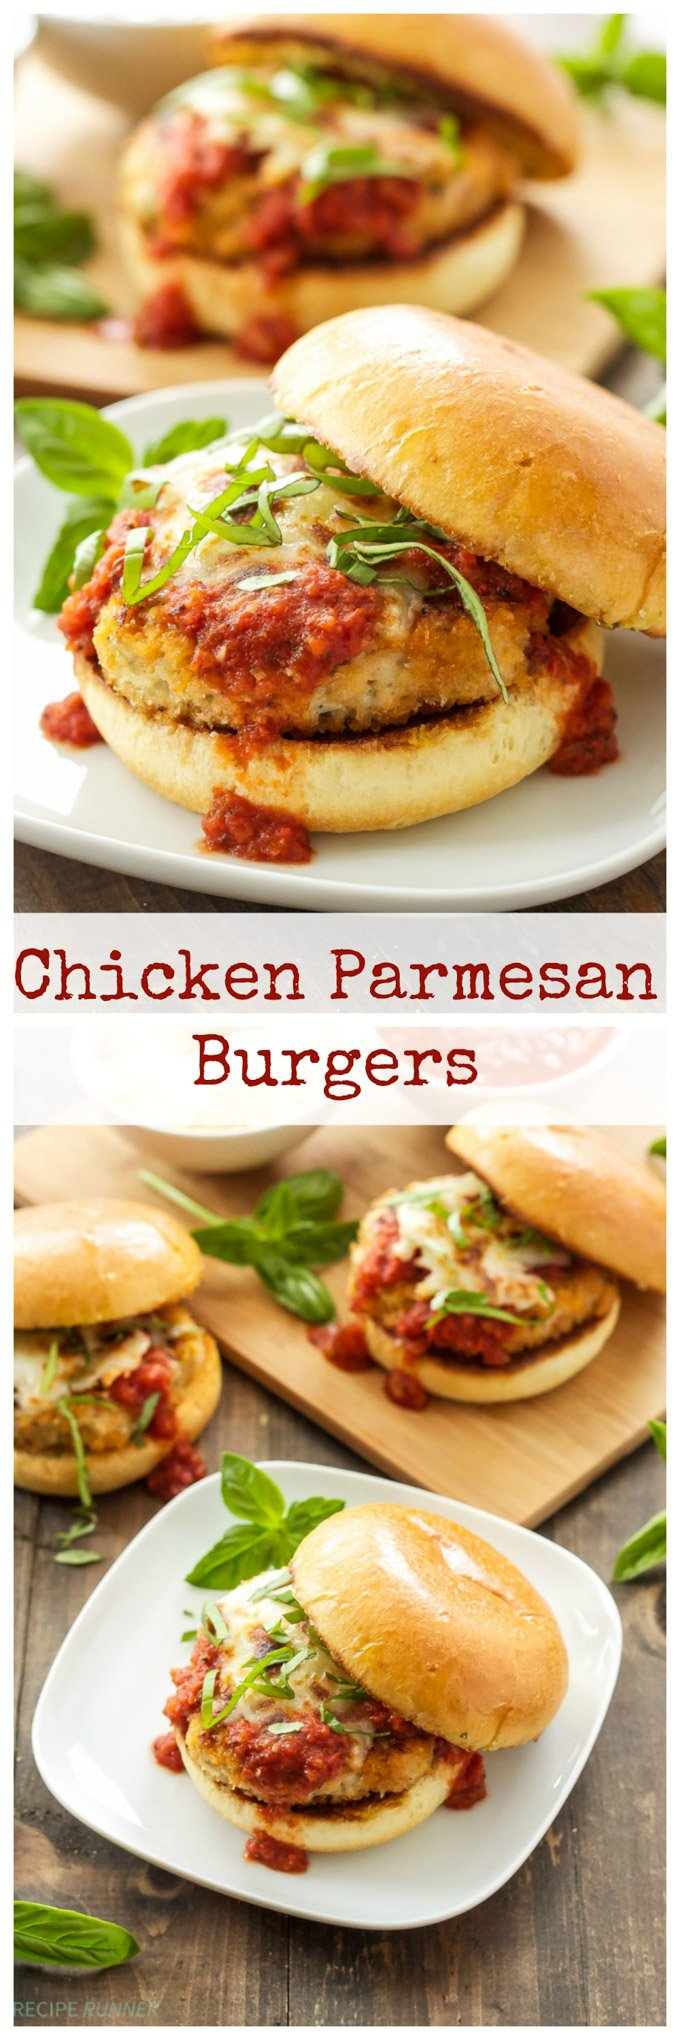 Chicken Parmesan Burgers | Classic chicken parmesan turned into a delicious burger!